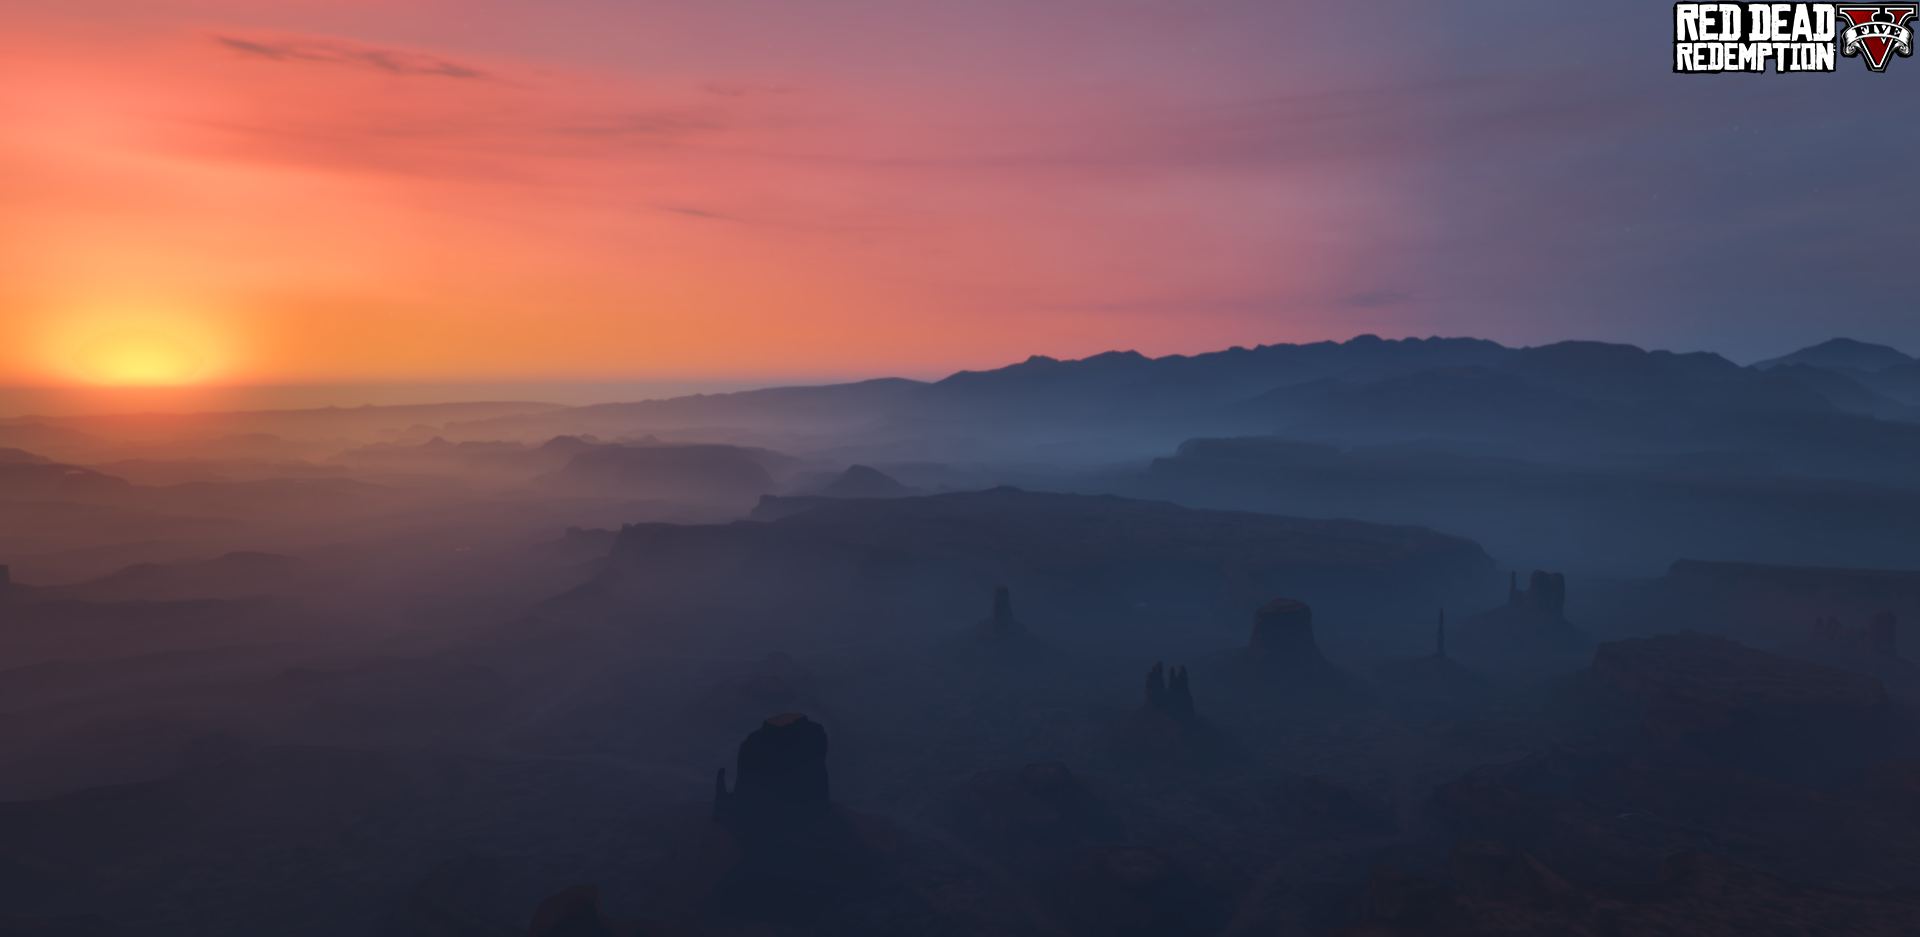 Red Dead Fans Attempting to Create Red Dead Redemption for PC via